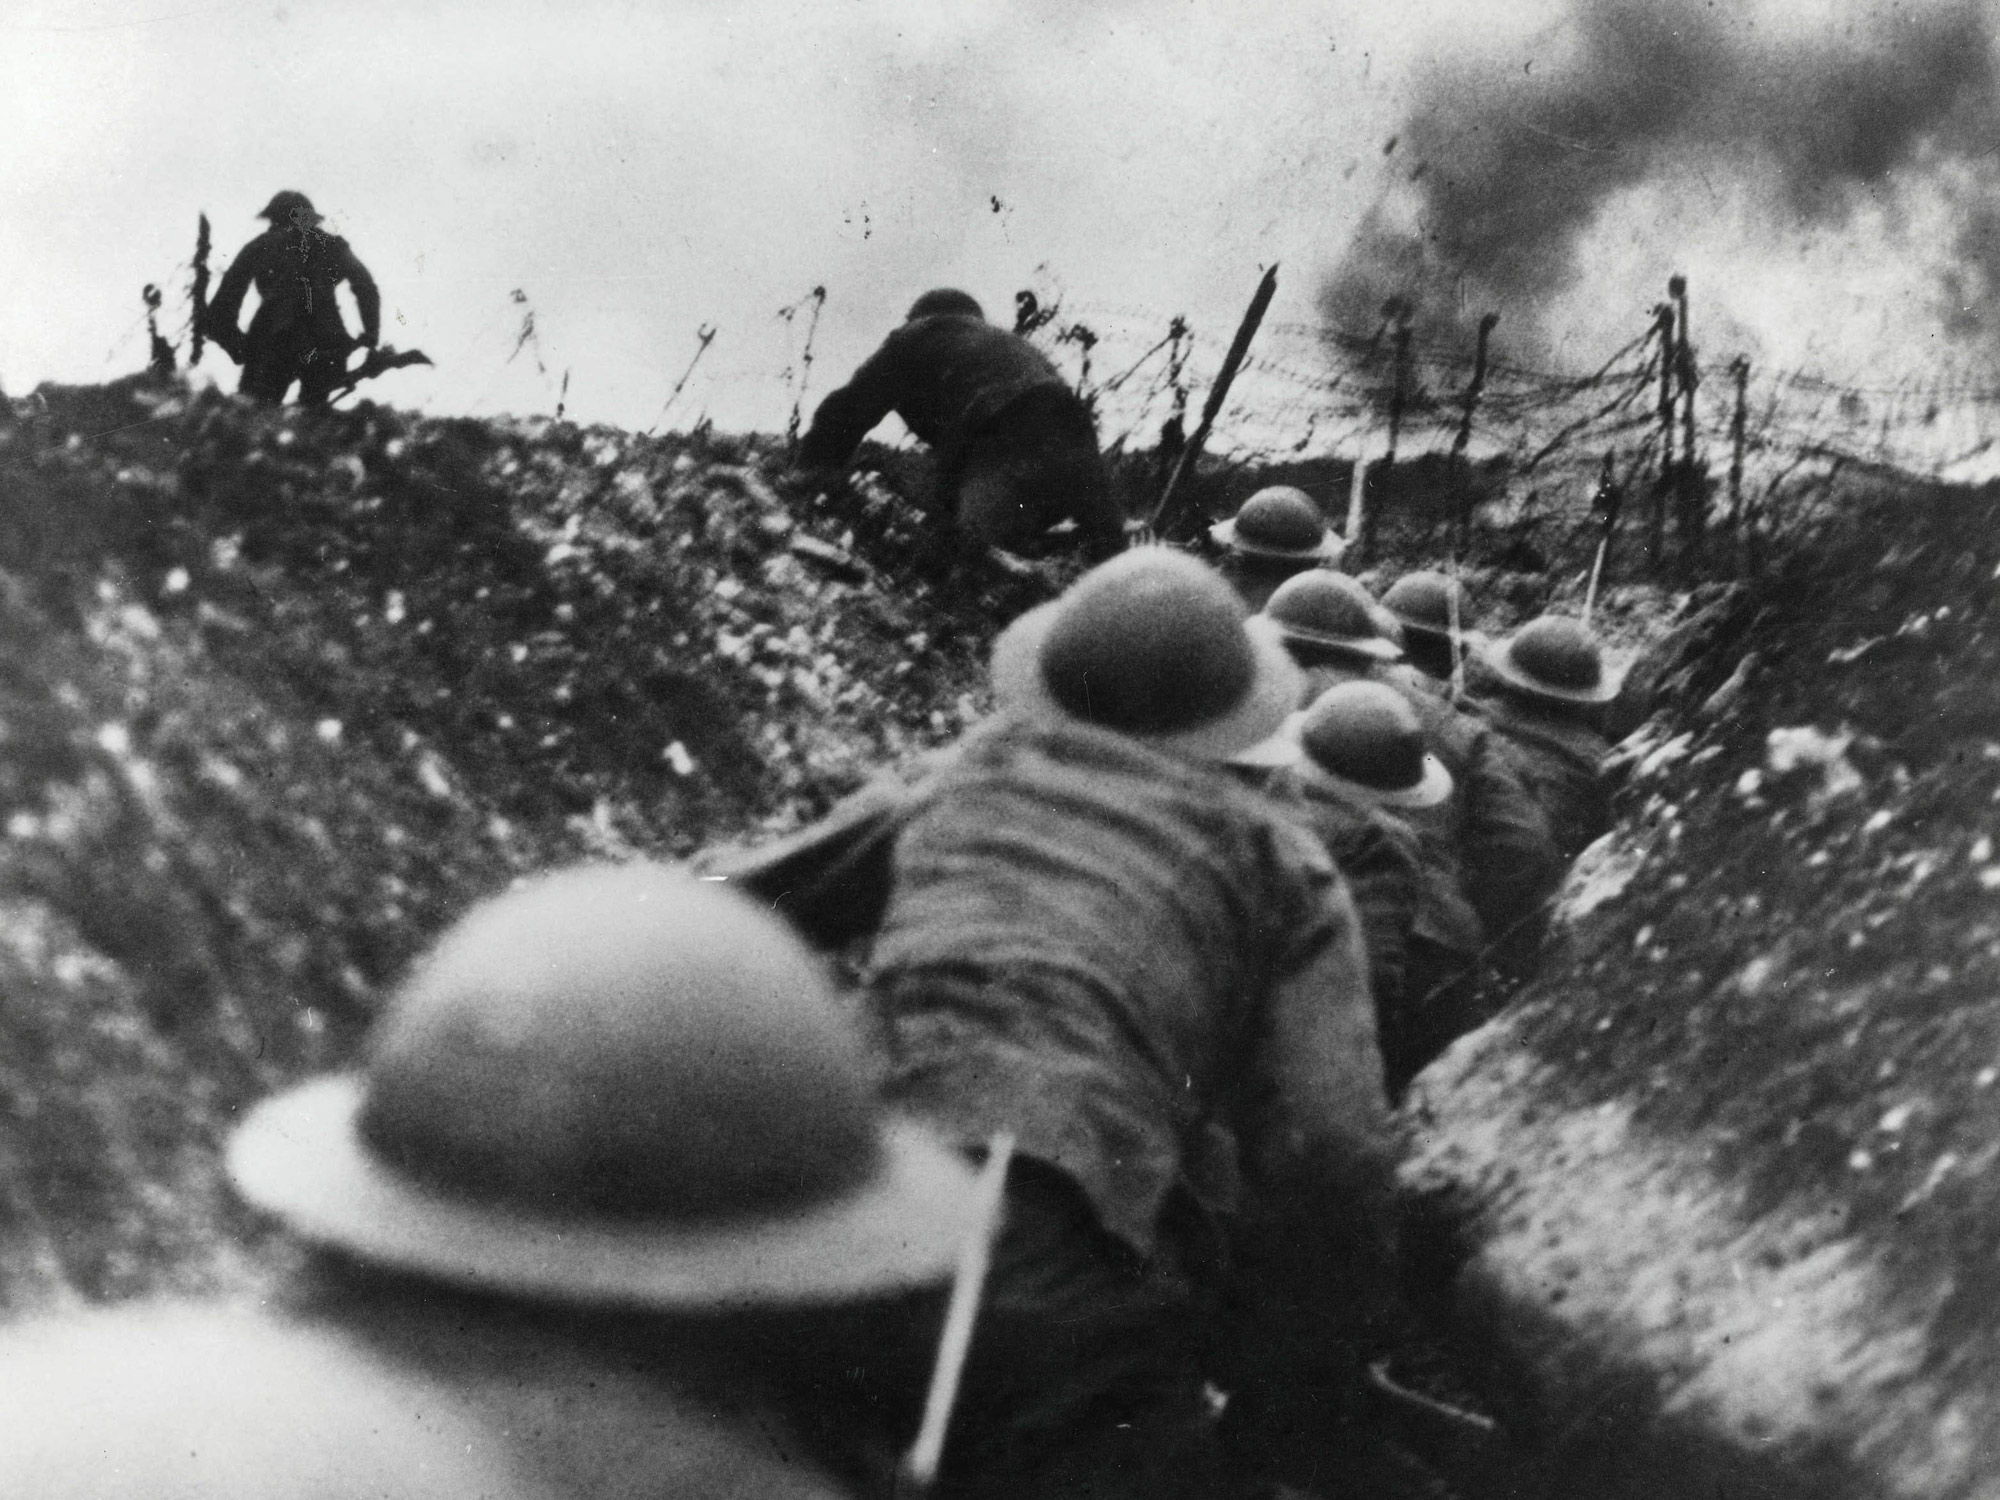 British infantry on the attack, circa July 1916.